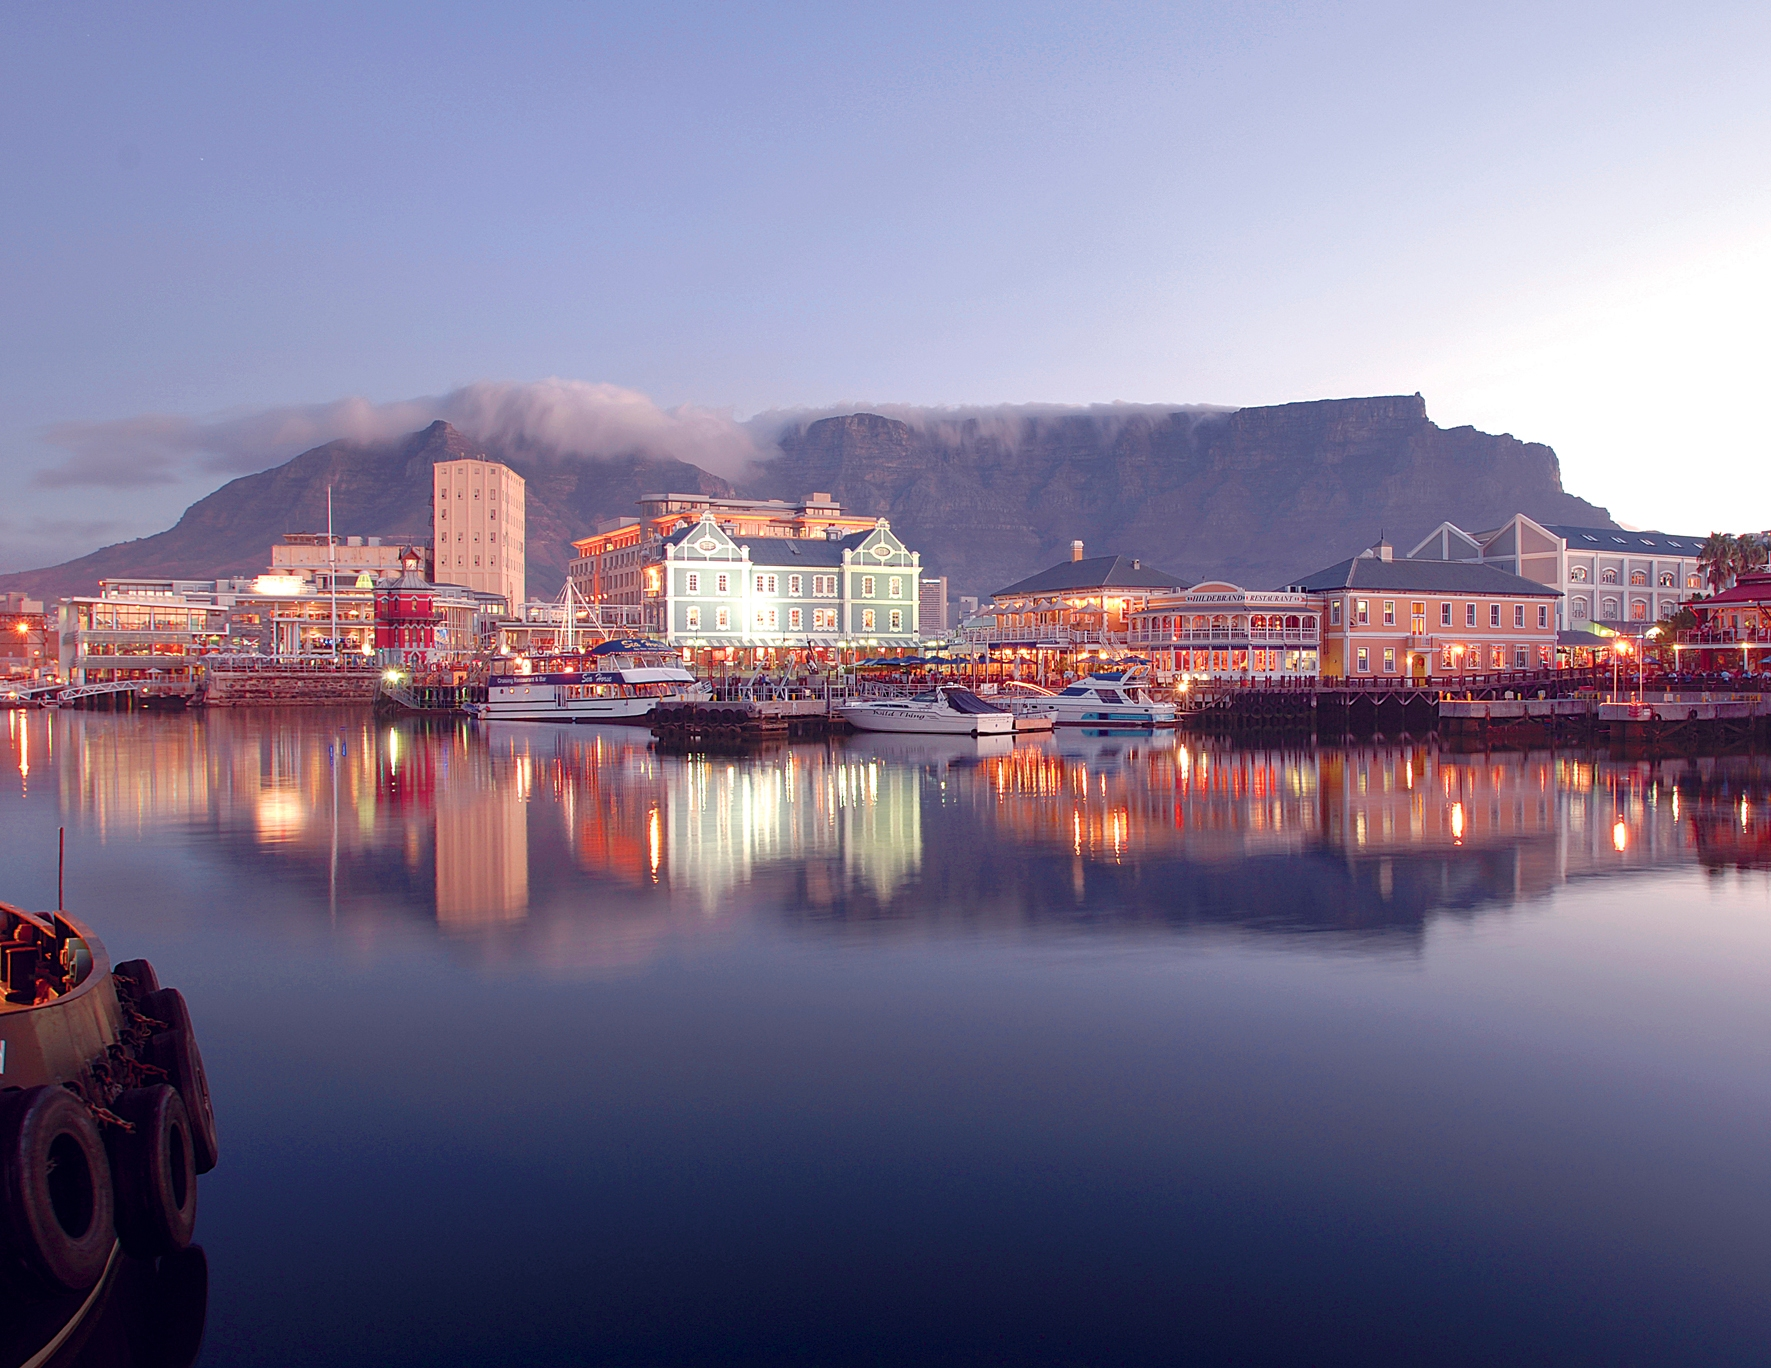 V&A Waterfront & Pierhead